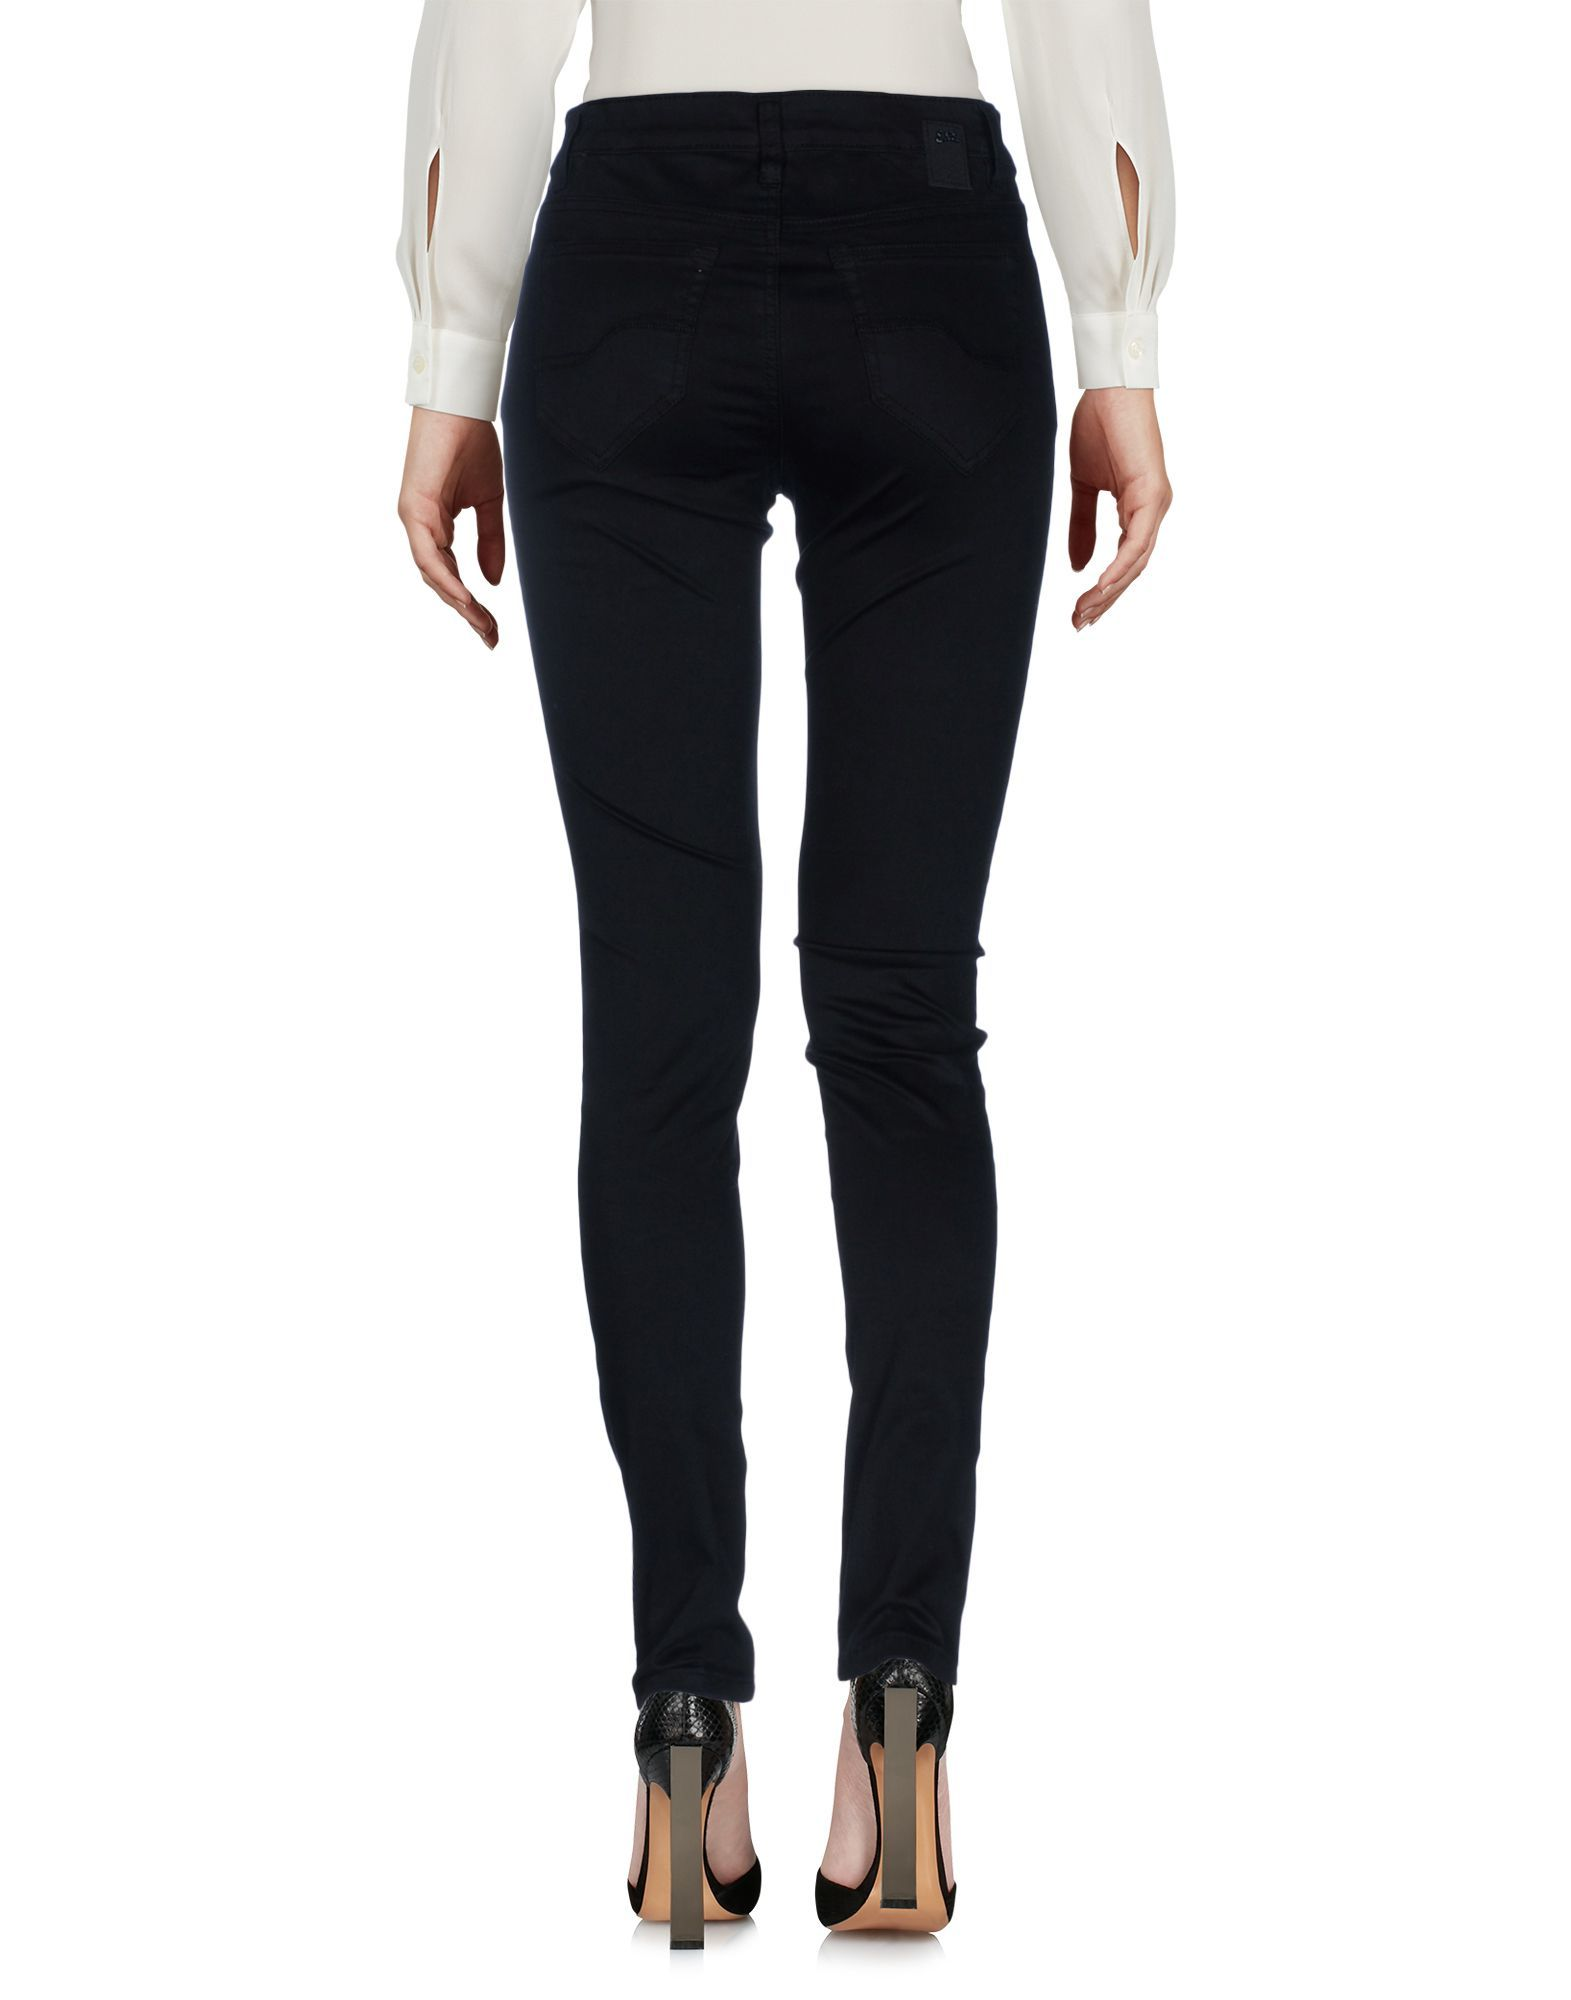 TROUSERS Yes Zee By Essenza Black Woman Cotton